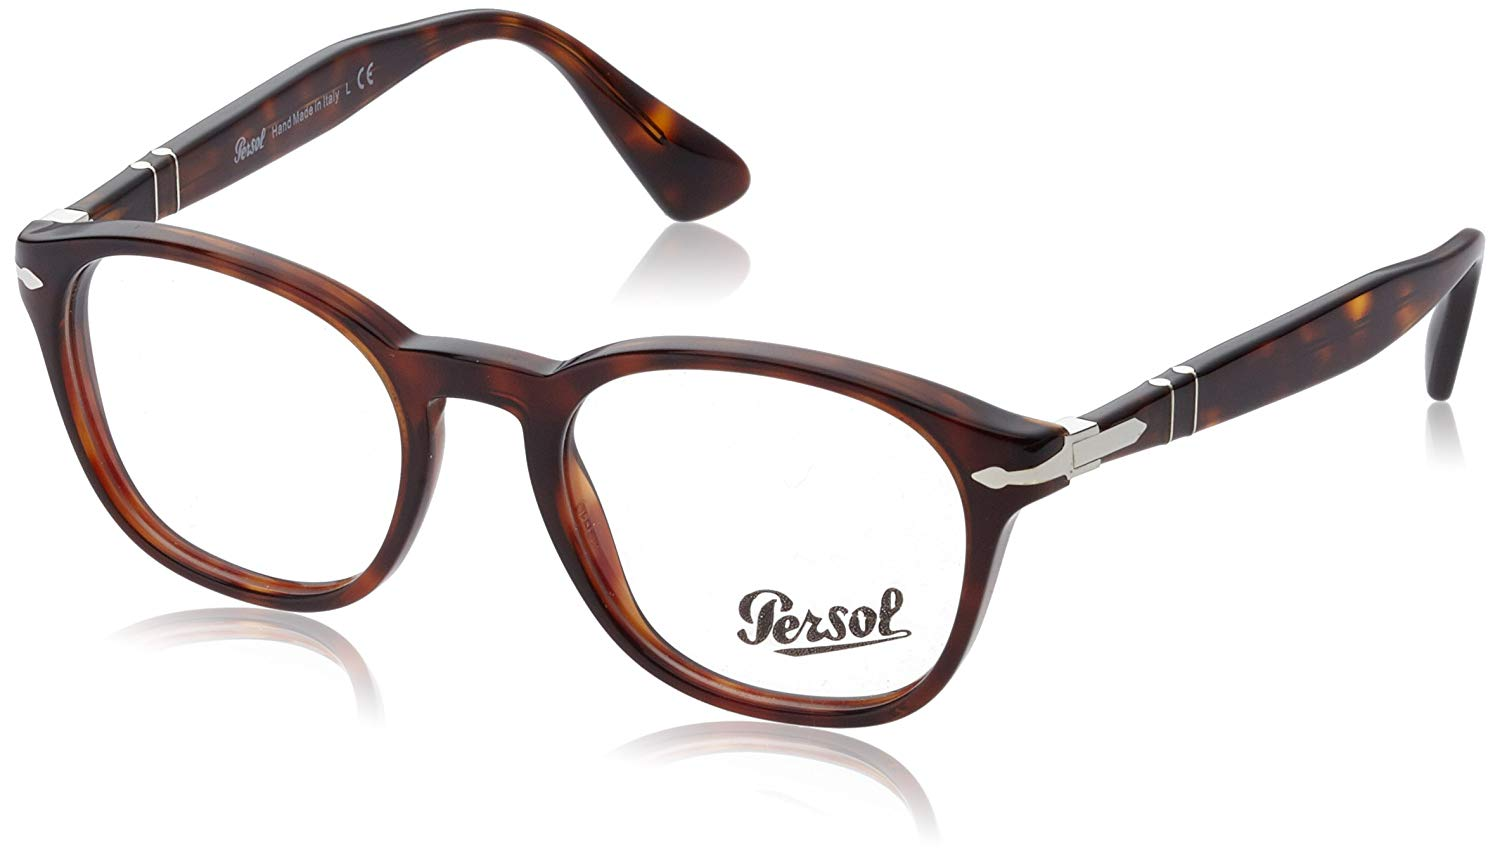 Deals PersolFind Cheap On Fake Line At Persol f7gyYb6